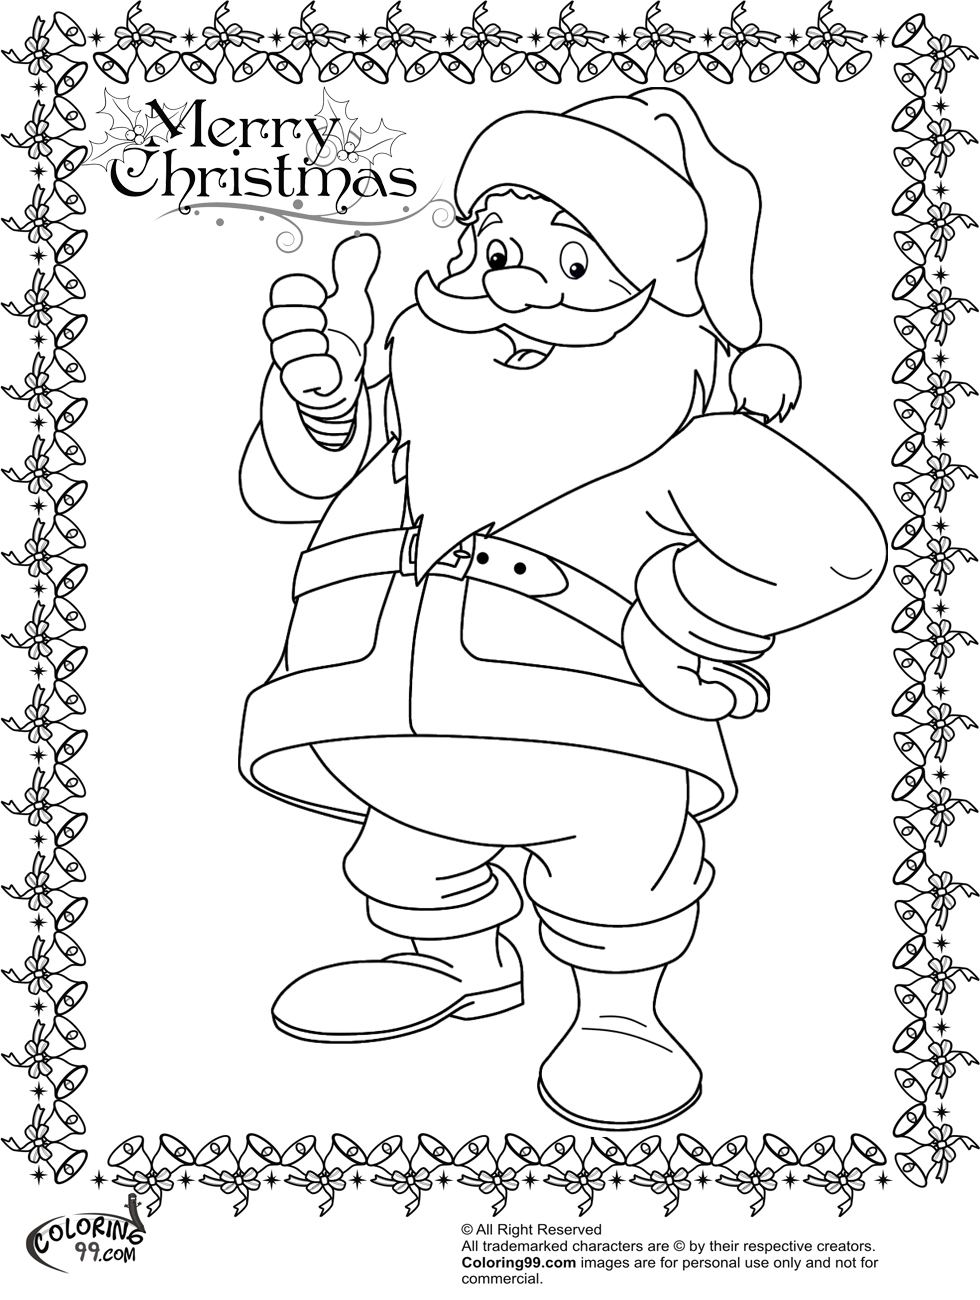 Santa Claus Coloring Pages | Team colors